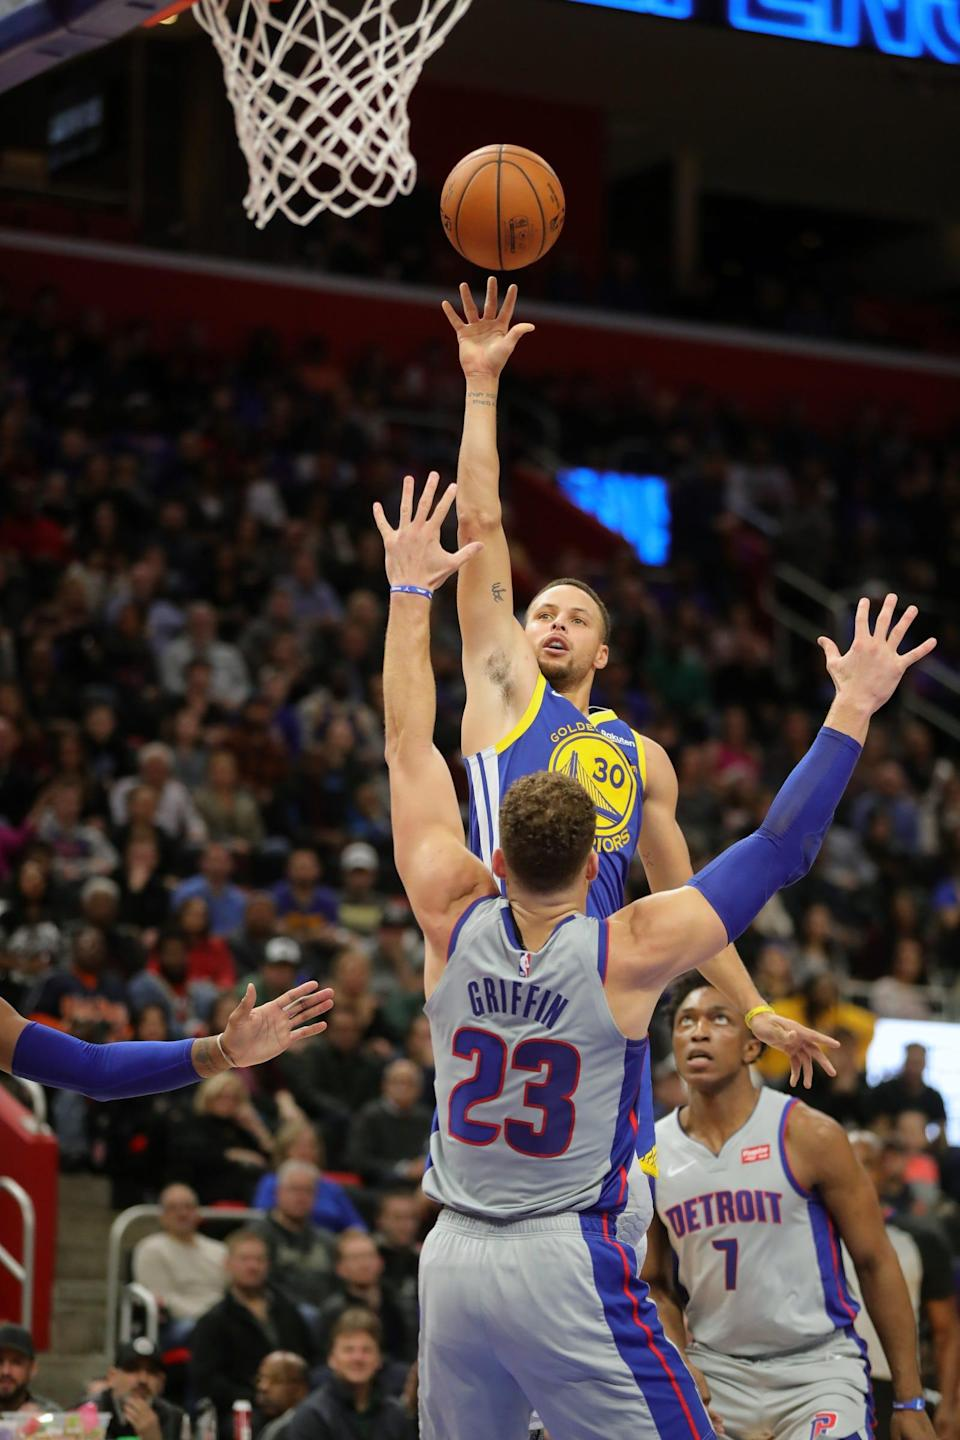 Stephen Curry shoots over Blake Griffin, Dec. 1, 2018 at Little Caesars Arena.